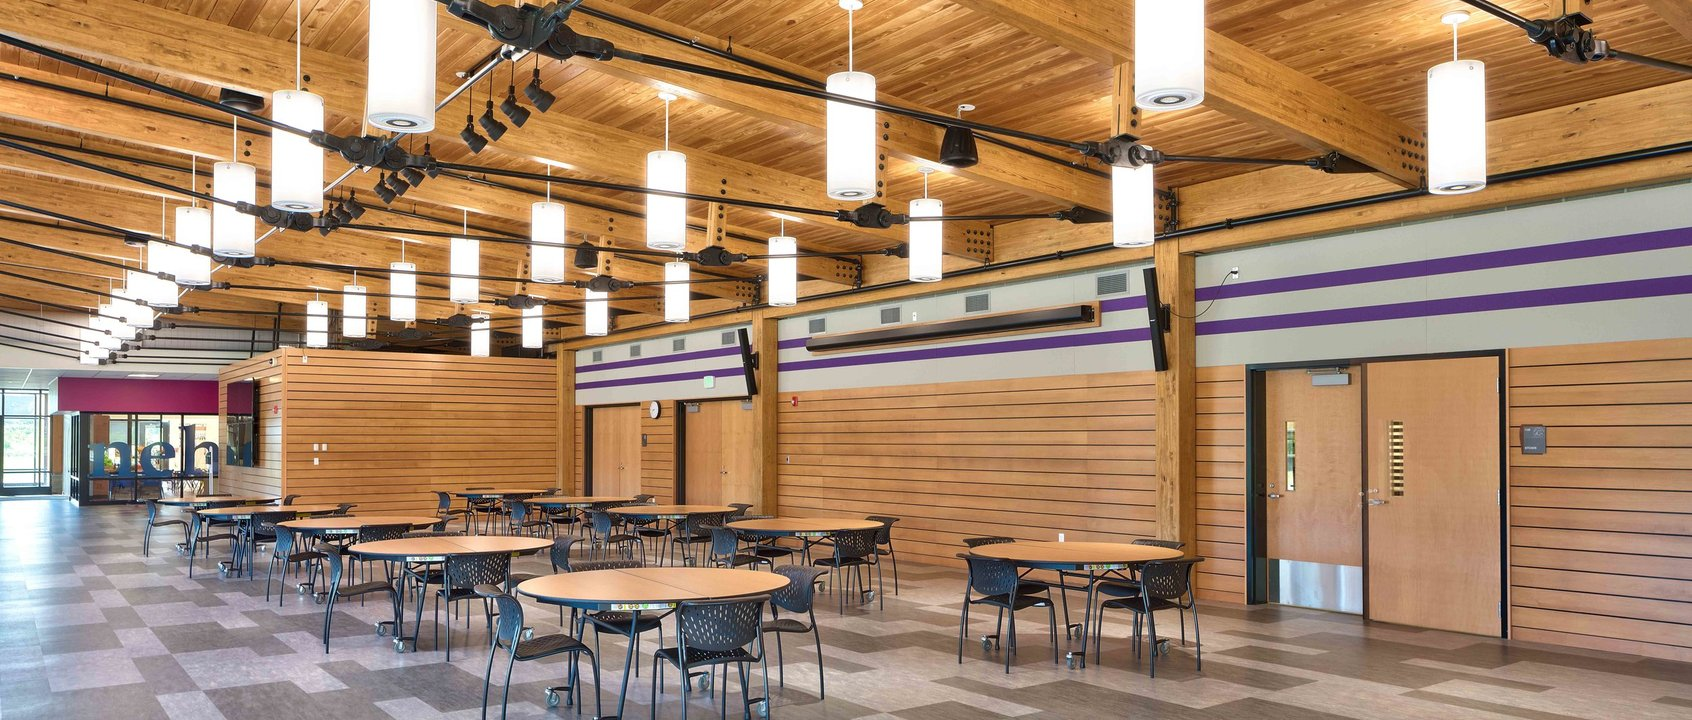 space ct designs a law headlines important pinterest schools of environmental on office in i images and elements modern about awesome design with interior great